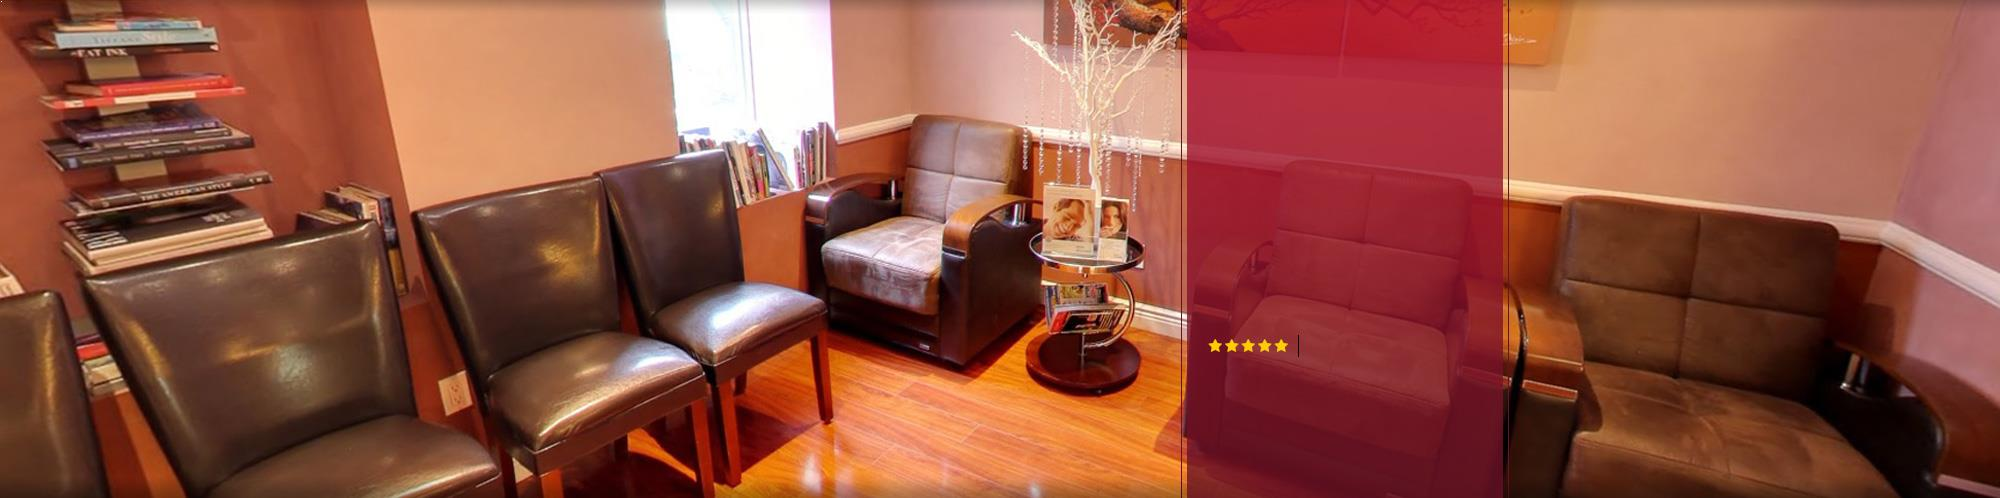 Dentist Office in Brooklyn & Glen Cove